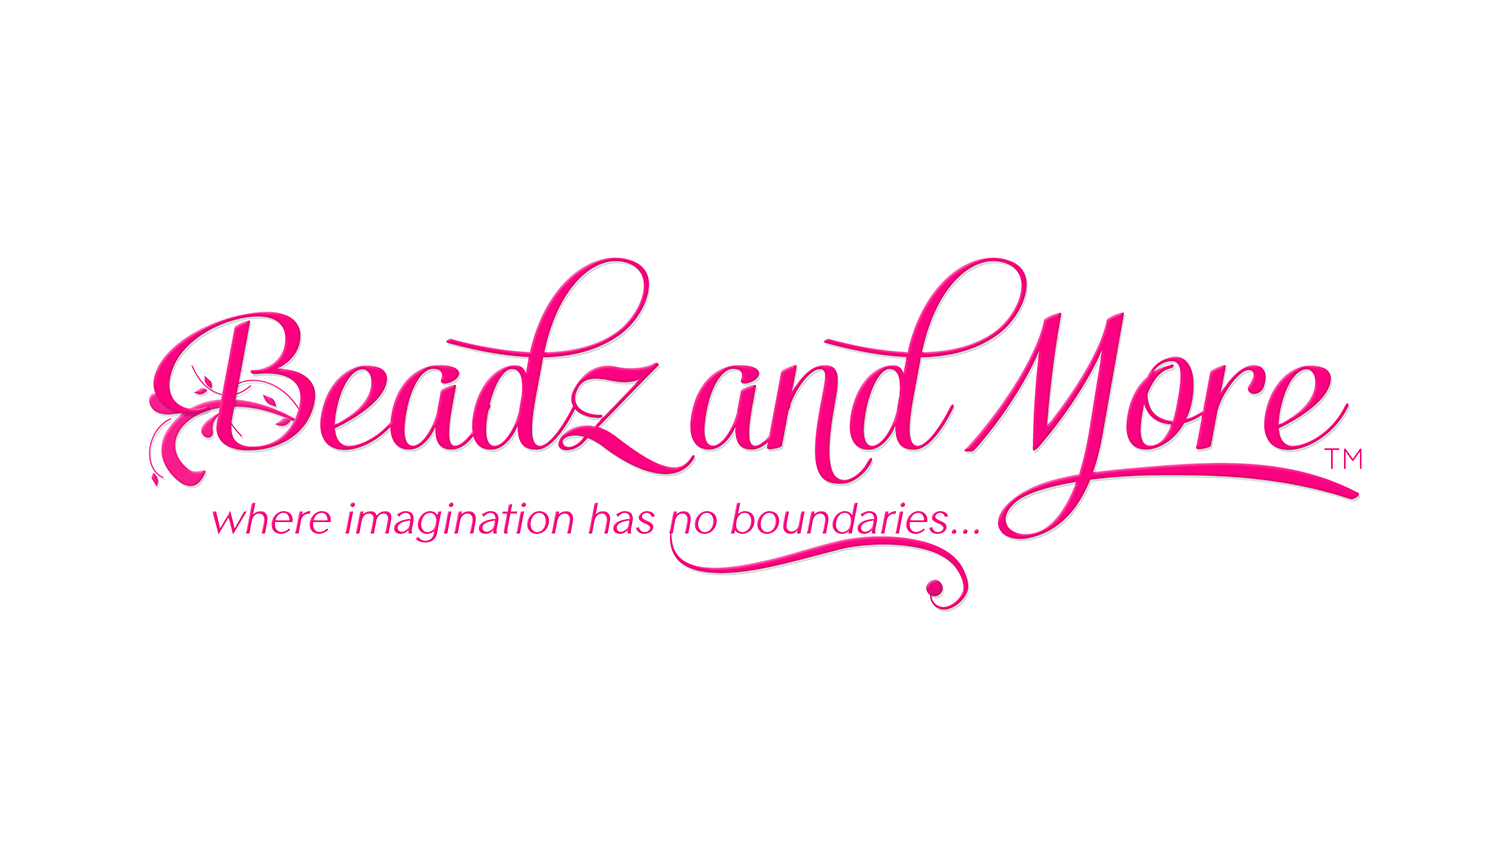 Beadz and More Logo and Tagline